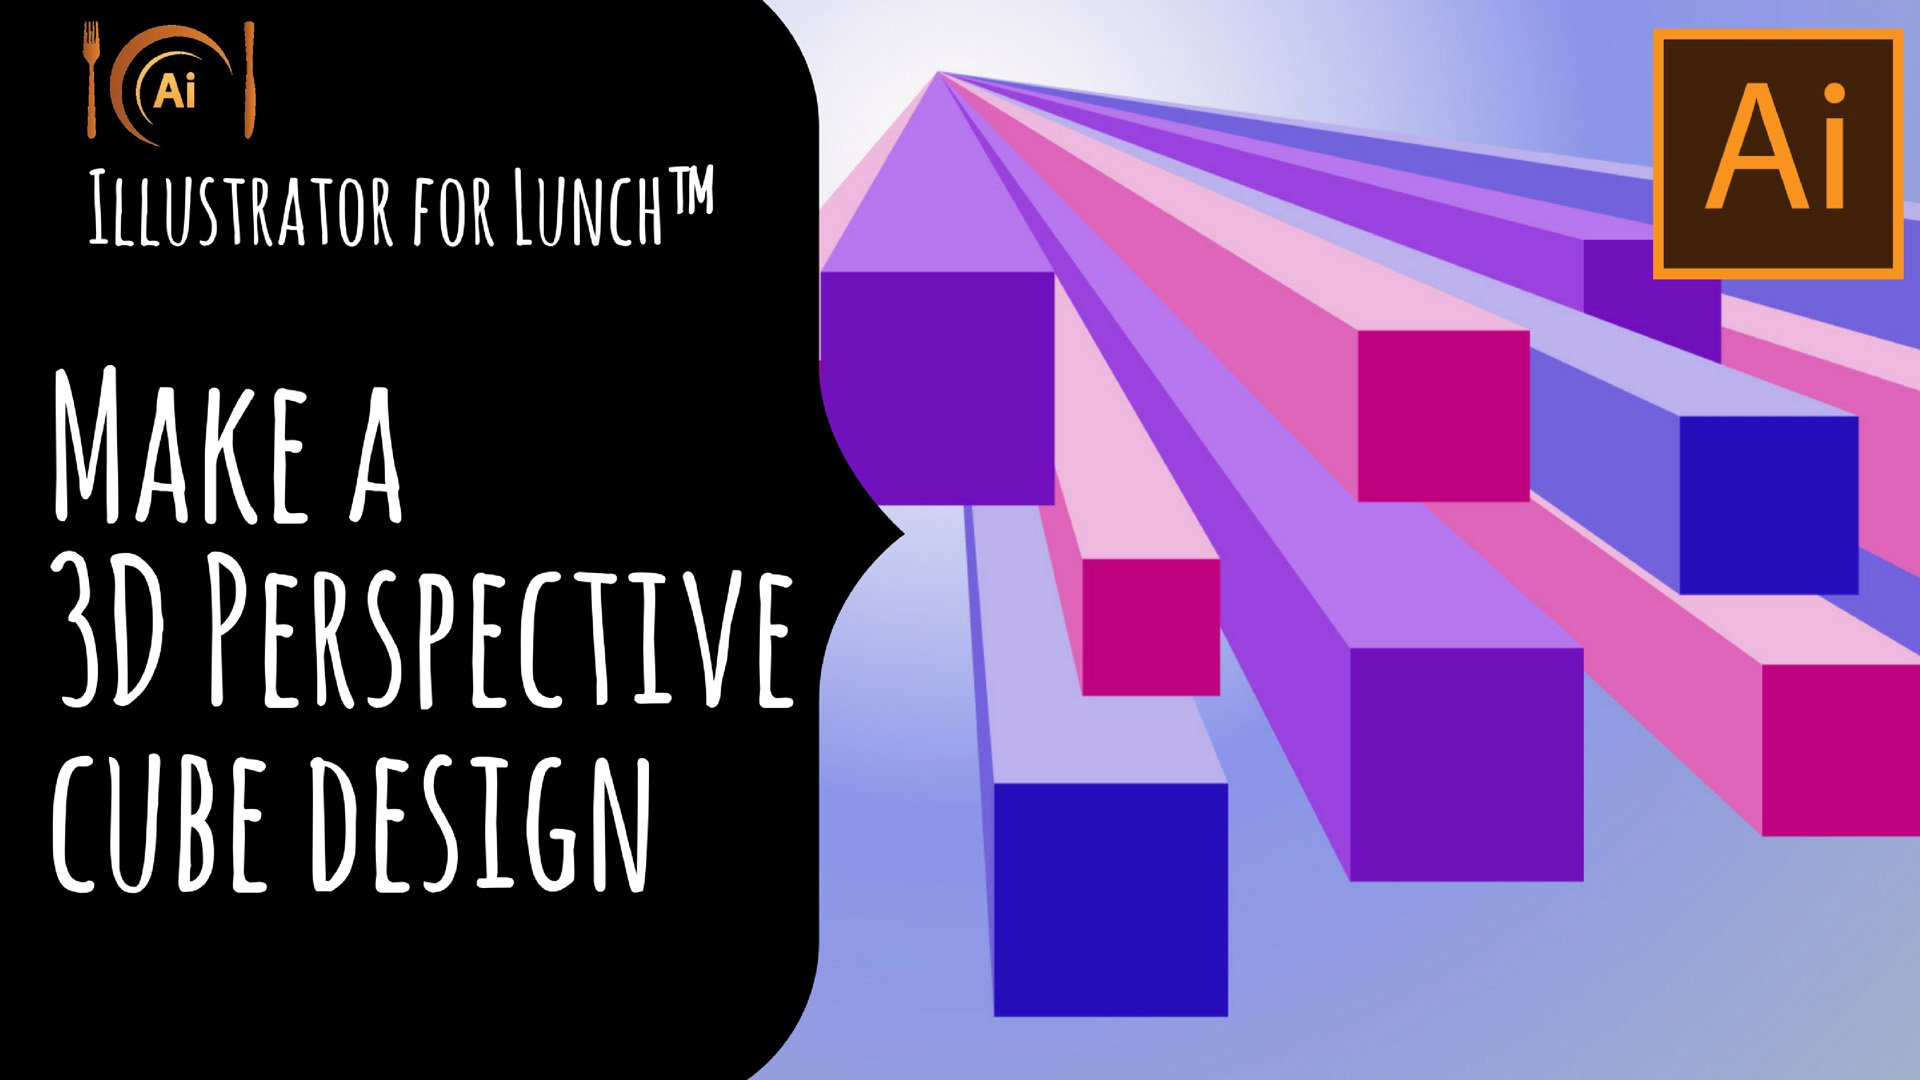 Illustrator for Lunch™ - 3D Perspective Cube design and